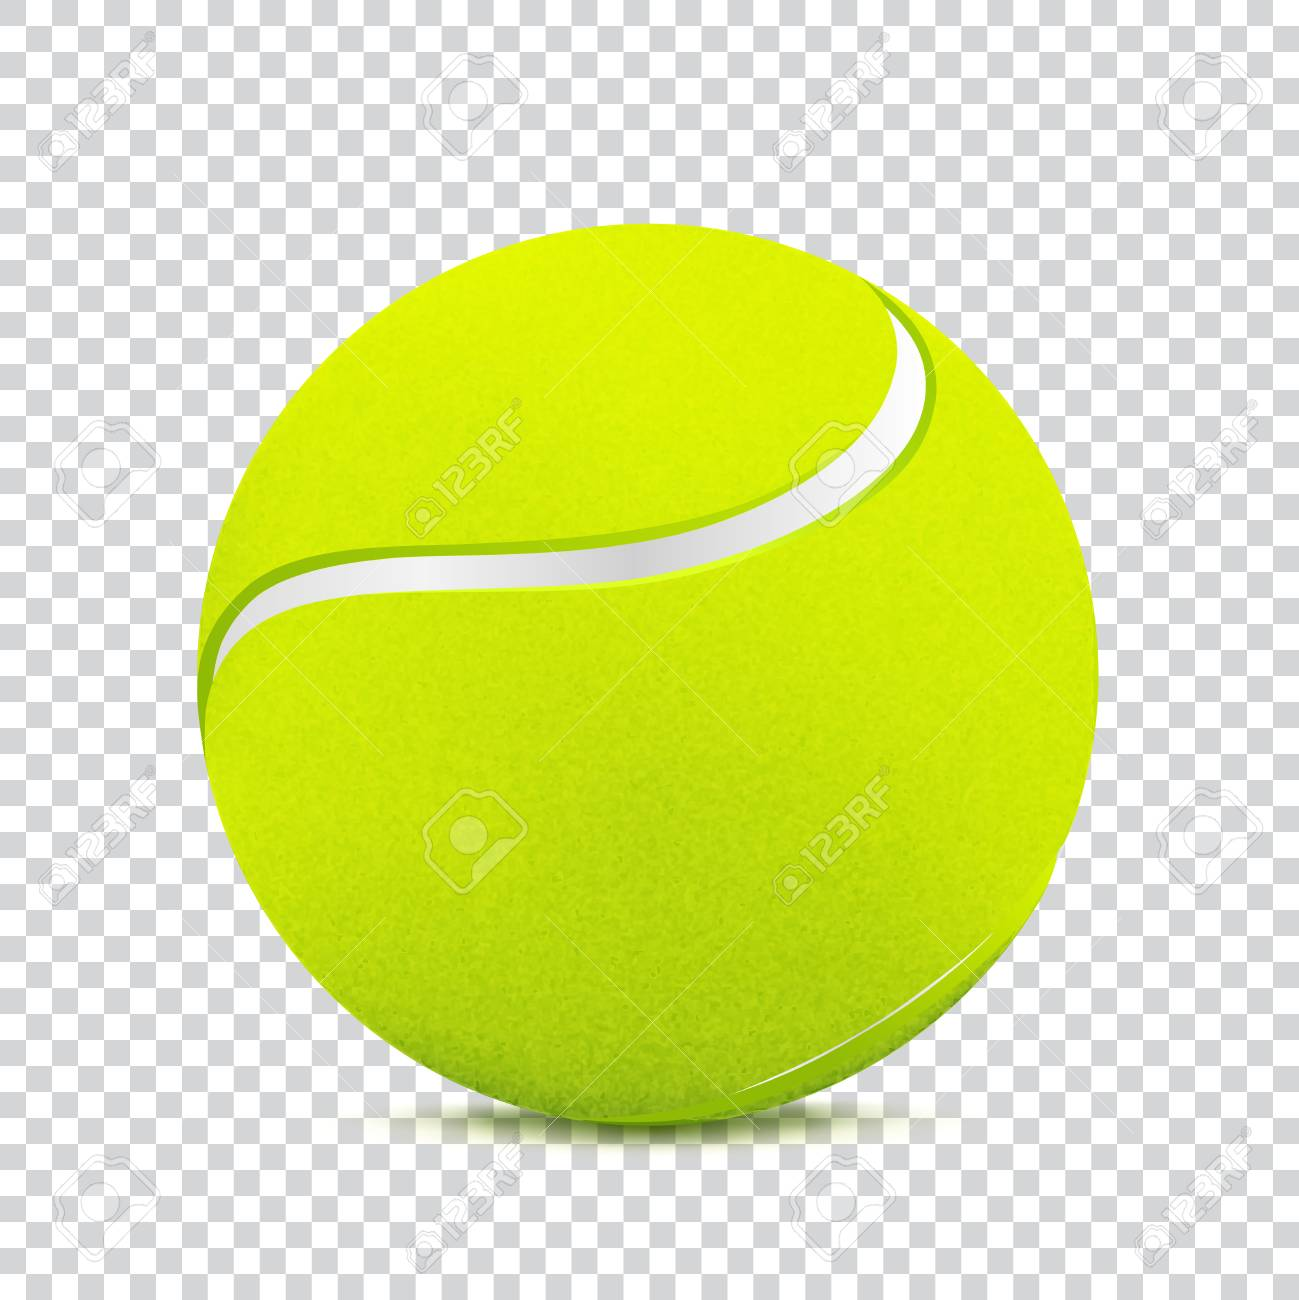 487 Tennis Ball free clipart.